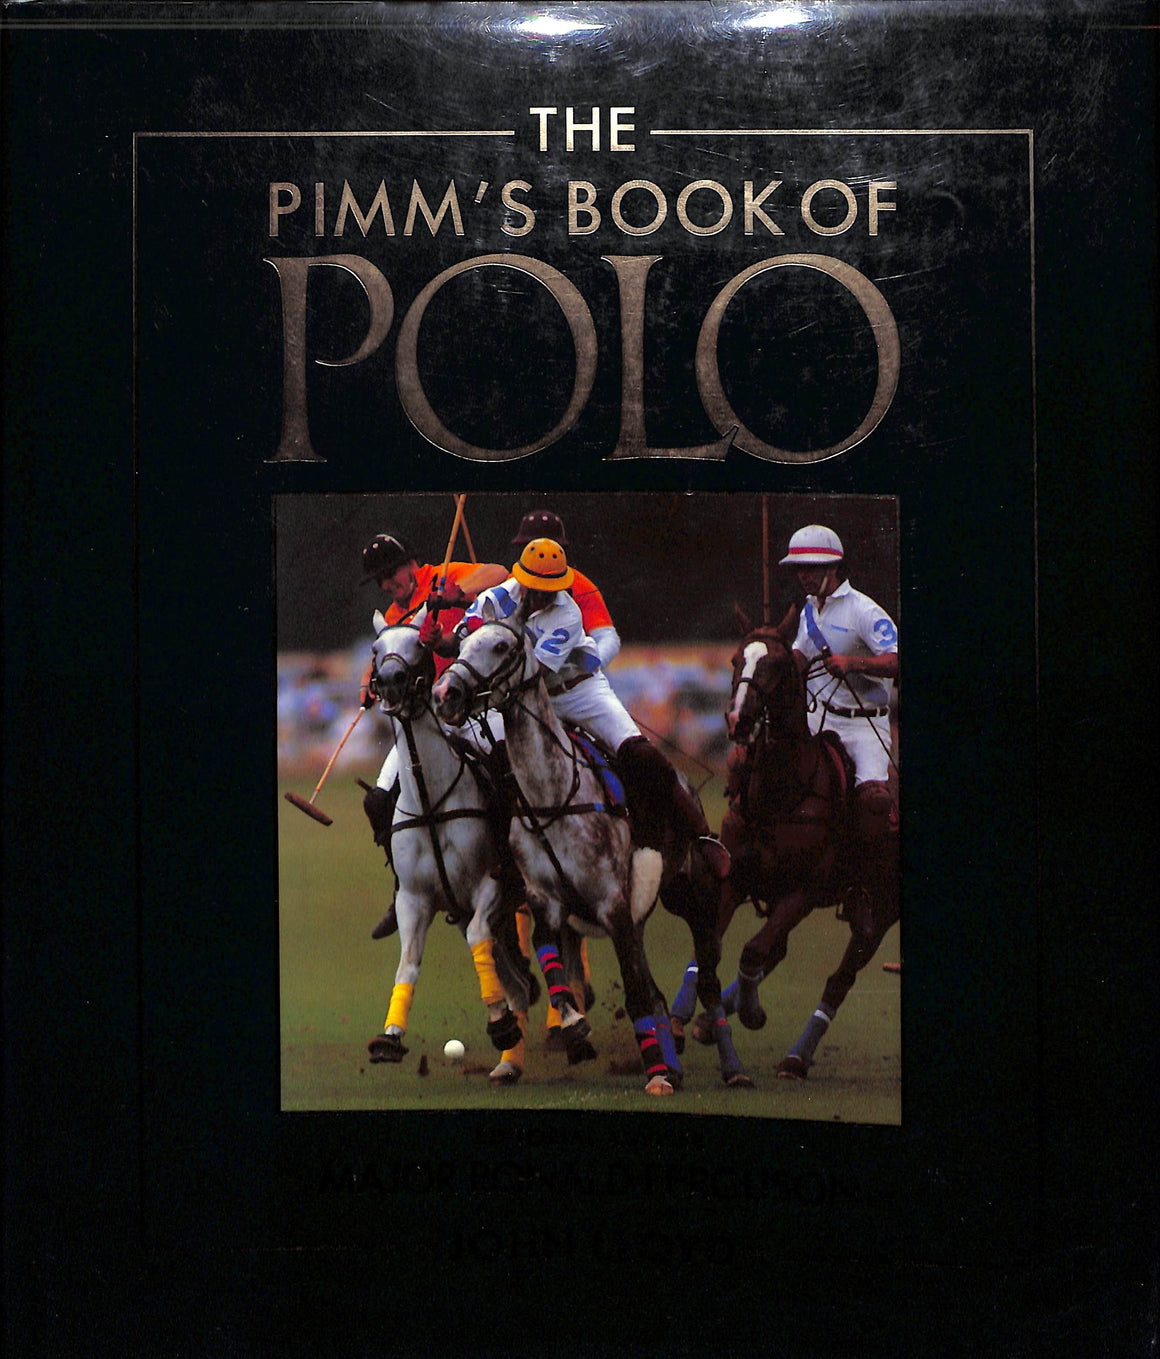 The Pimm's Book of Polo by John Lloyd